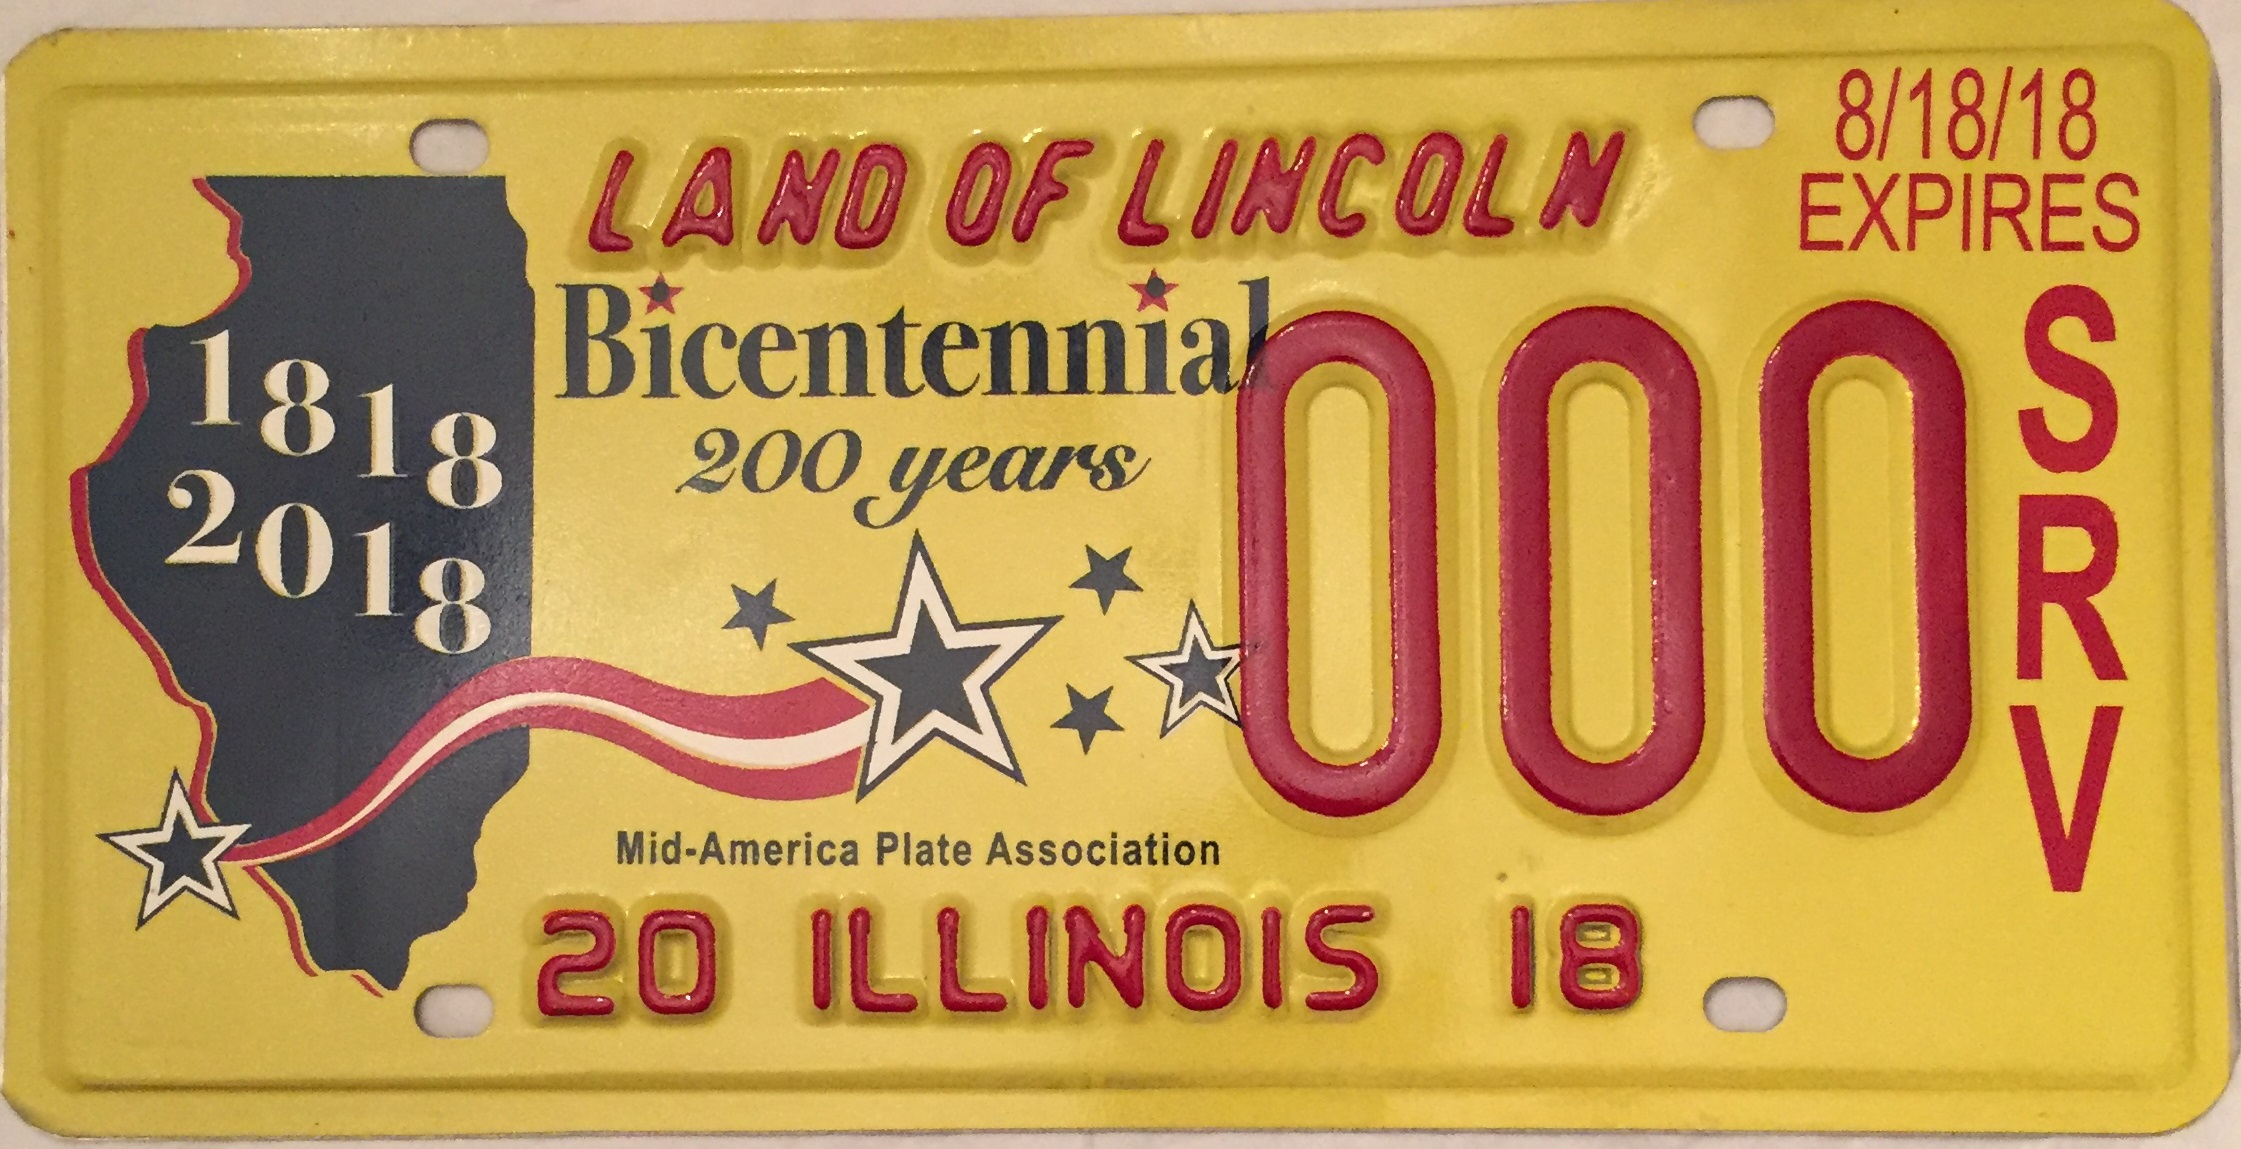 ... any currently registered passenger car including Antique Vehicles B Truck and Recreational Vehicles (under 8000 Ibs) for 60 days prior to the event.  sc 1 st  Mid-America Plate Association & MAPA Plate